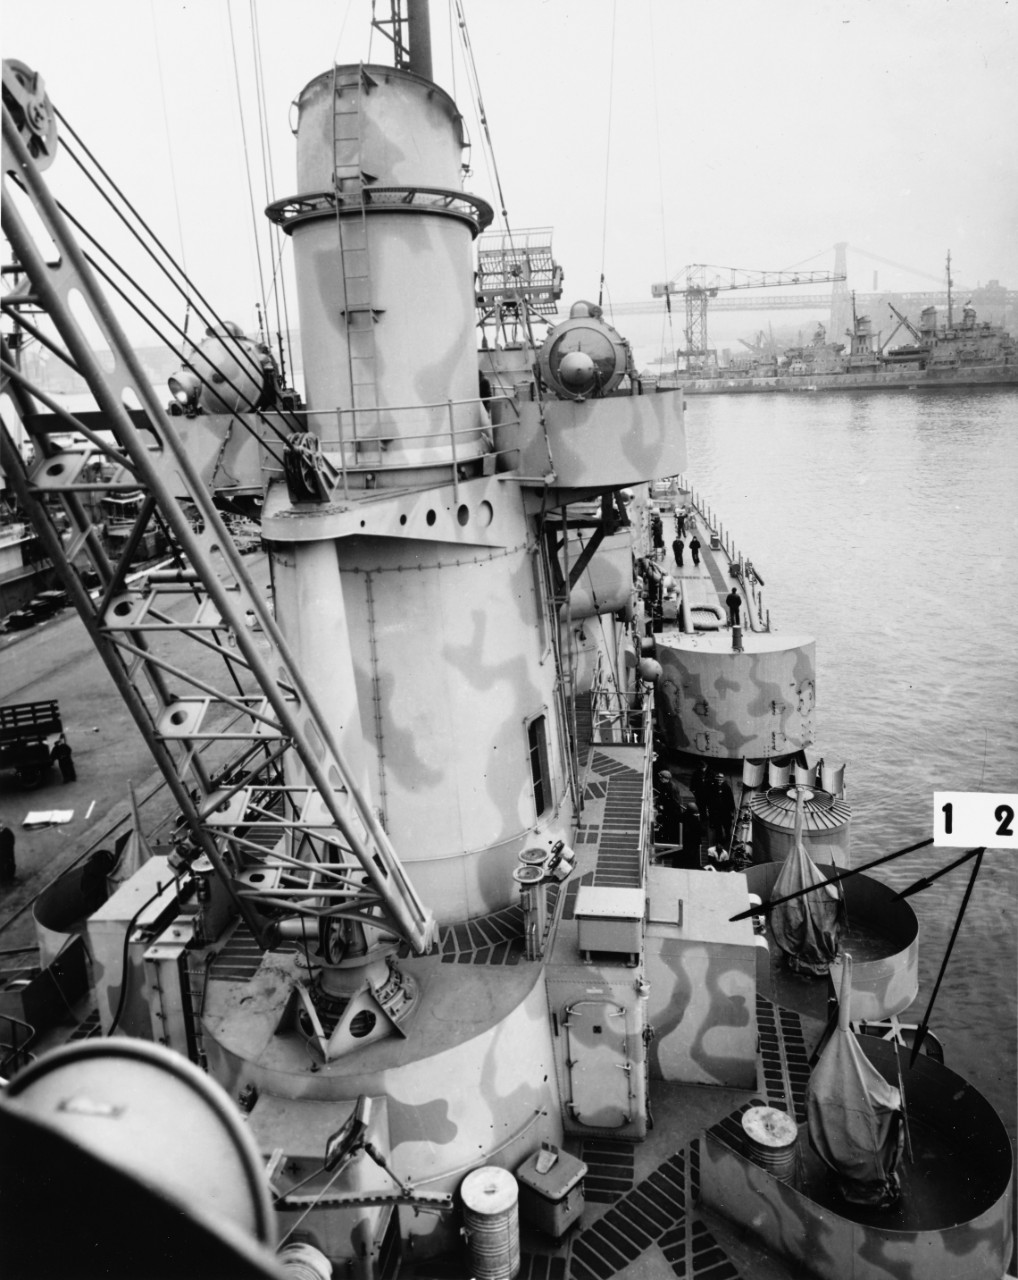 USS Juneau (CL-52) at the New York Navy Yard, 19 March 1942. Arrows mark recent alterations. Note details of boat crane.